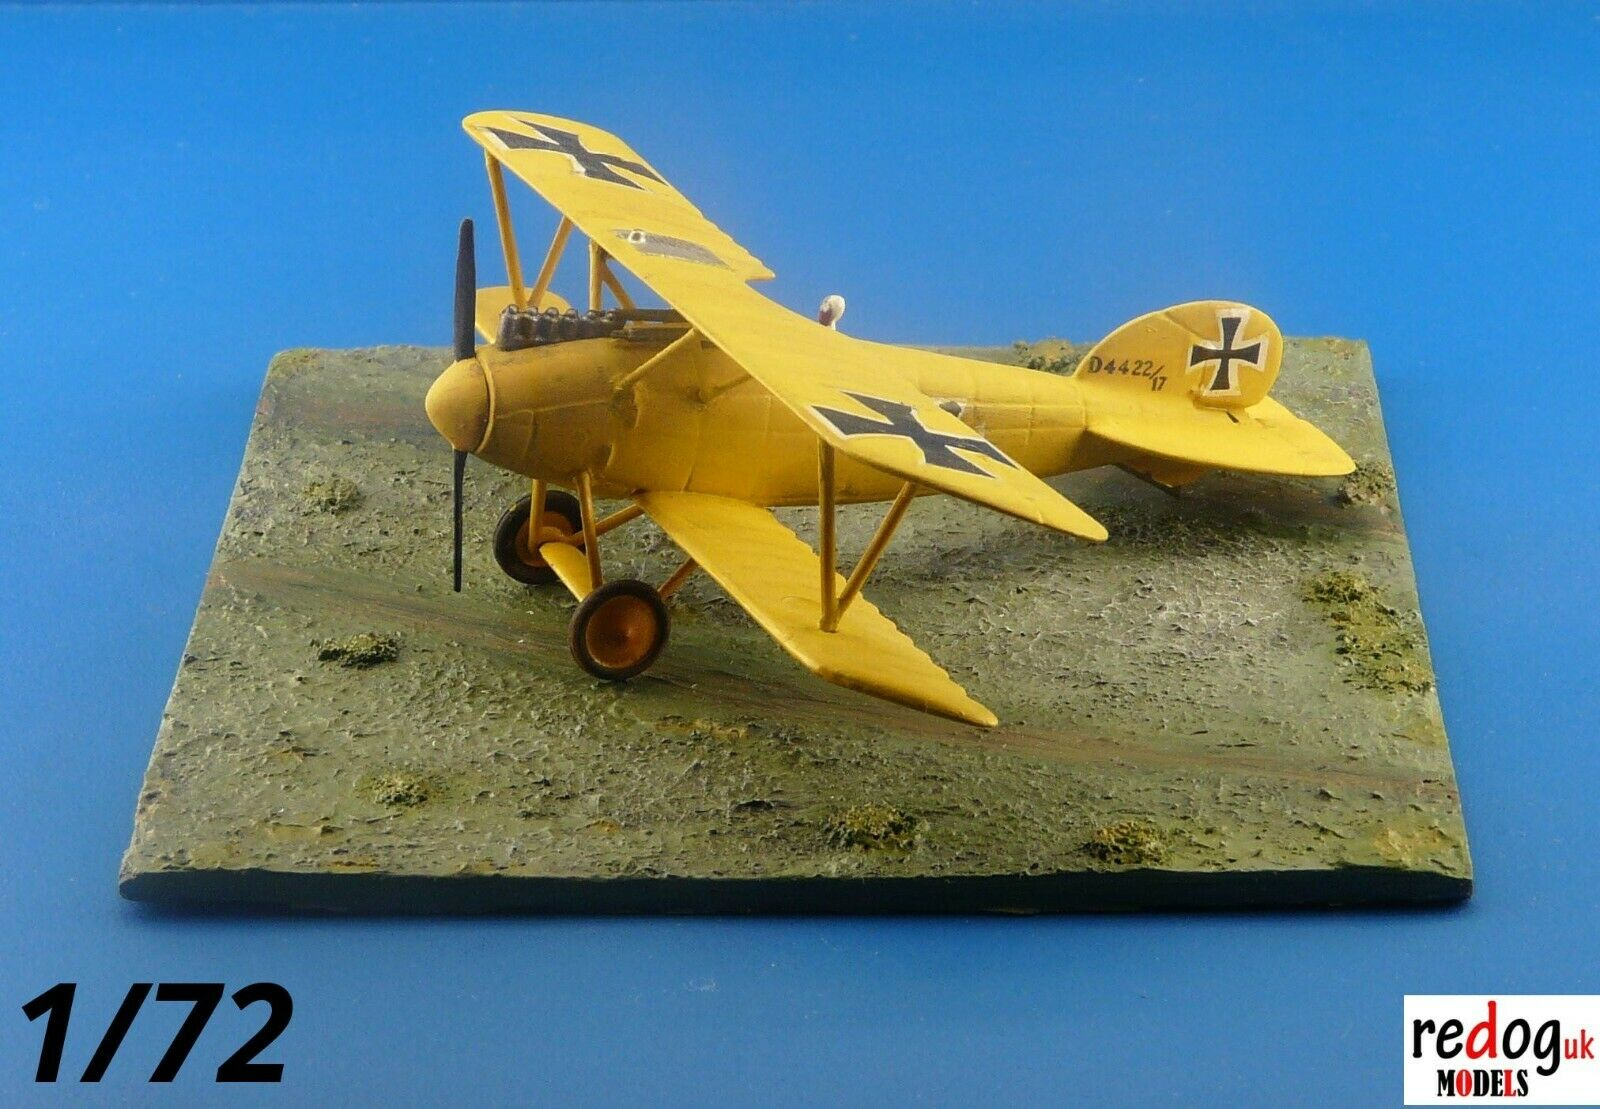 1/72 WWI Diorama Display Grass Field Base For Airplane Scale Models Kits D21 - redoguk